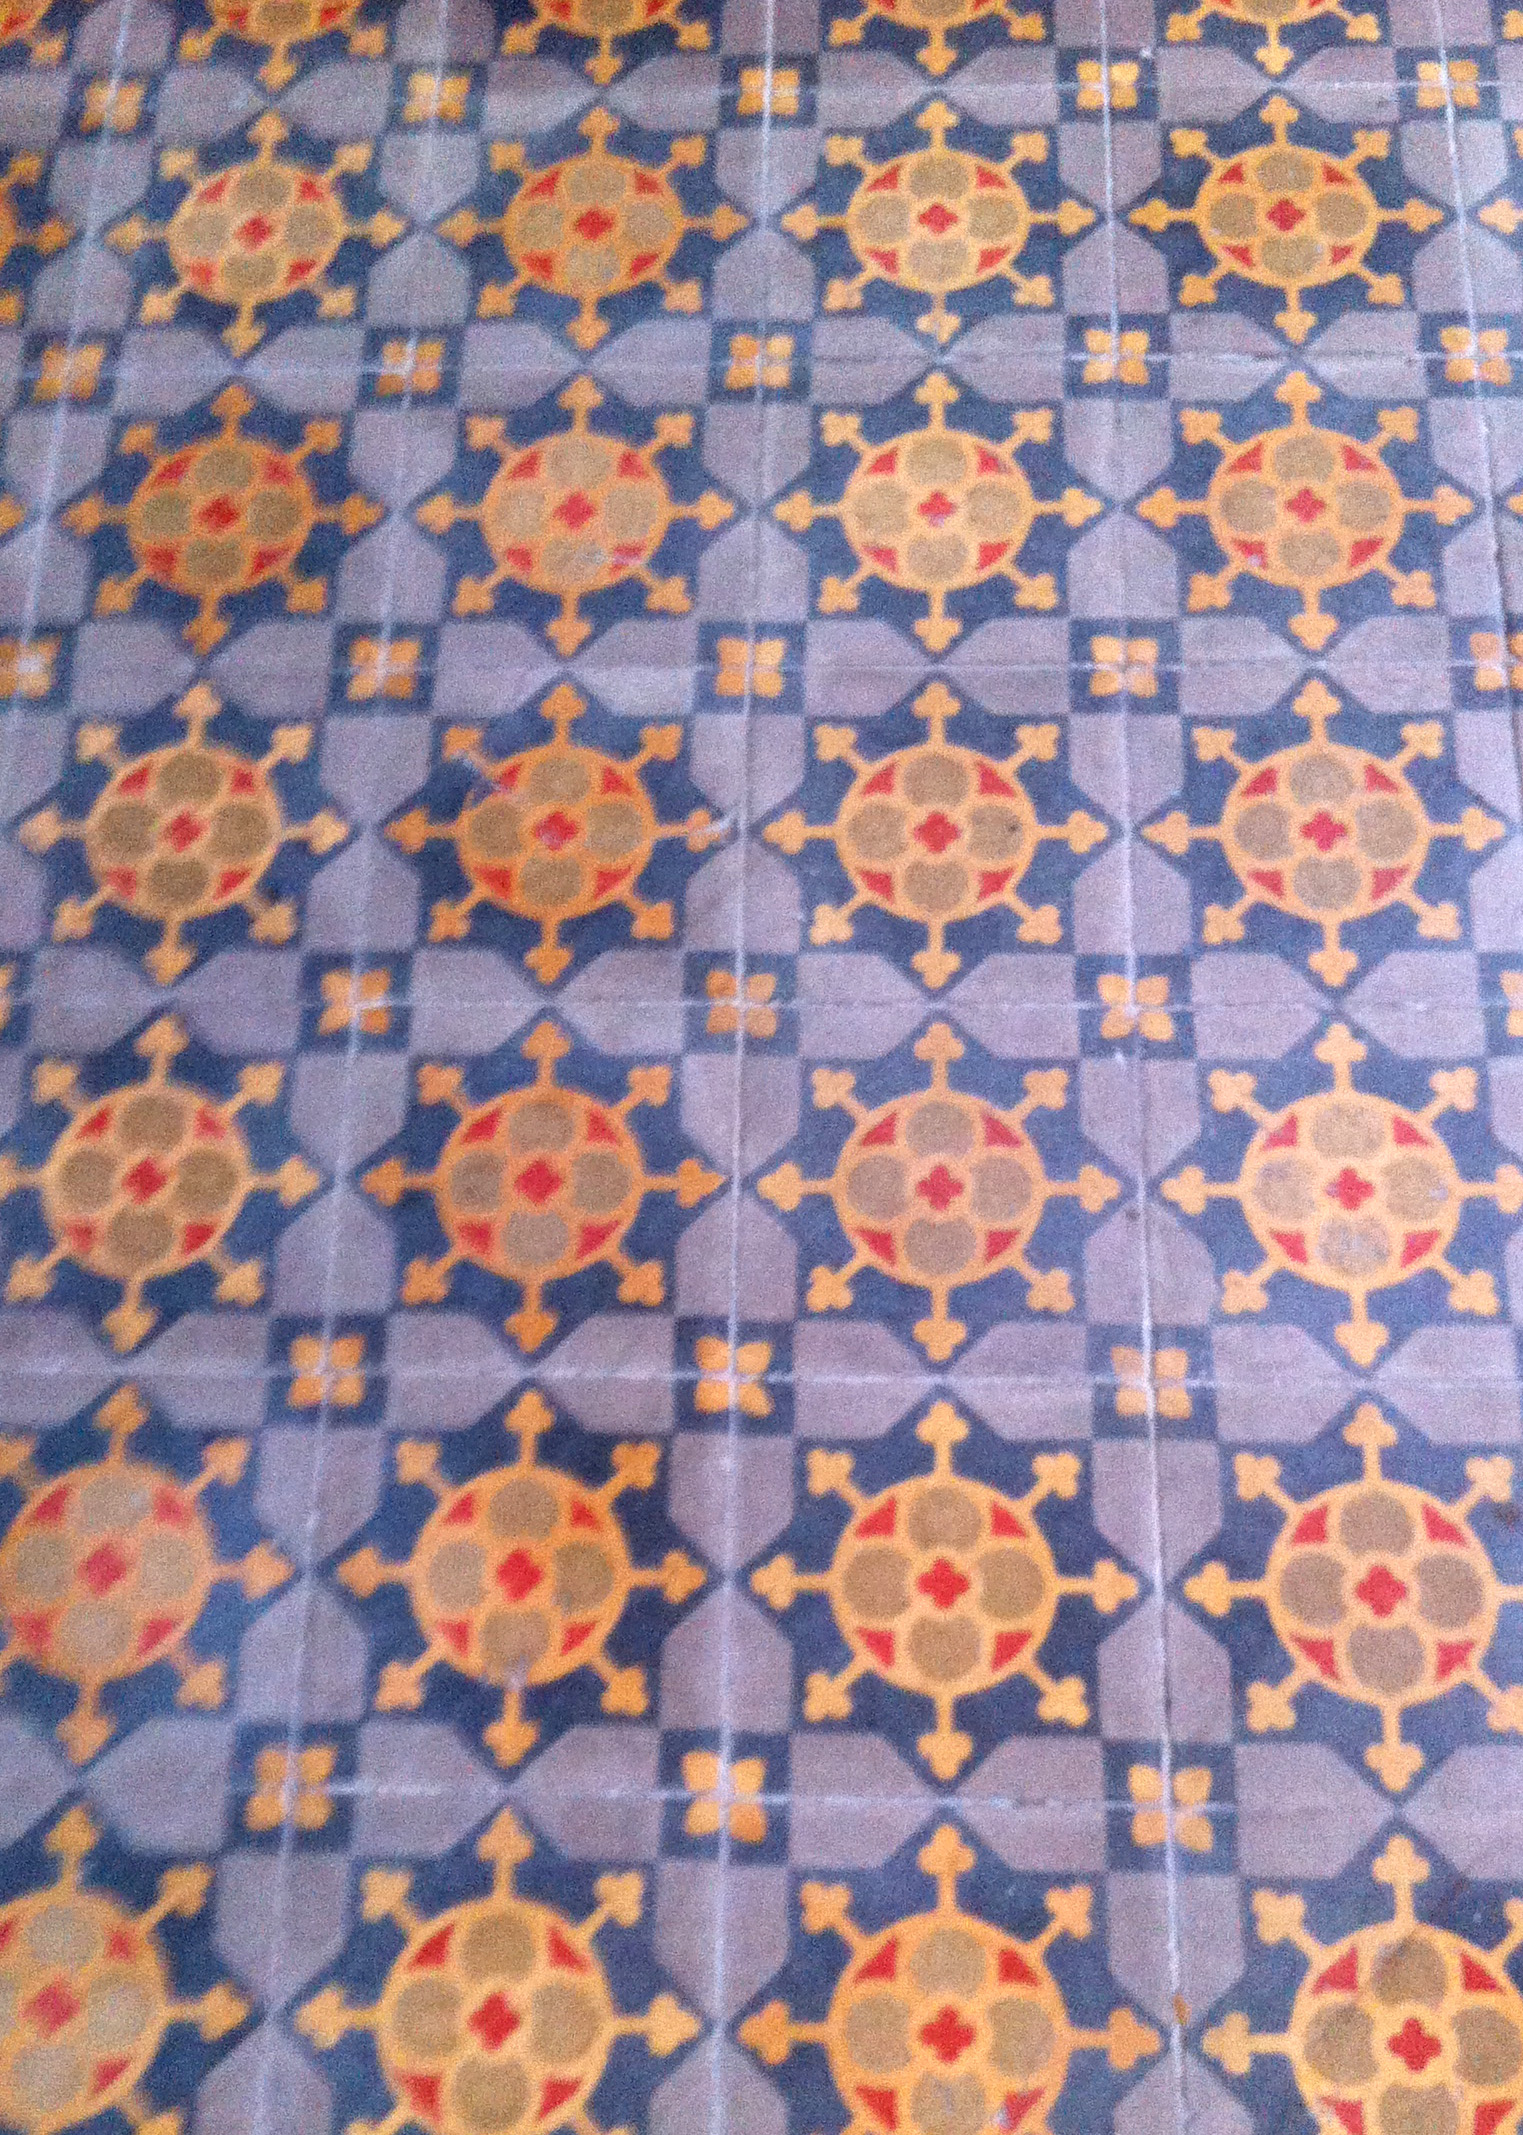 Spanish tile floors